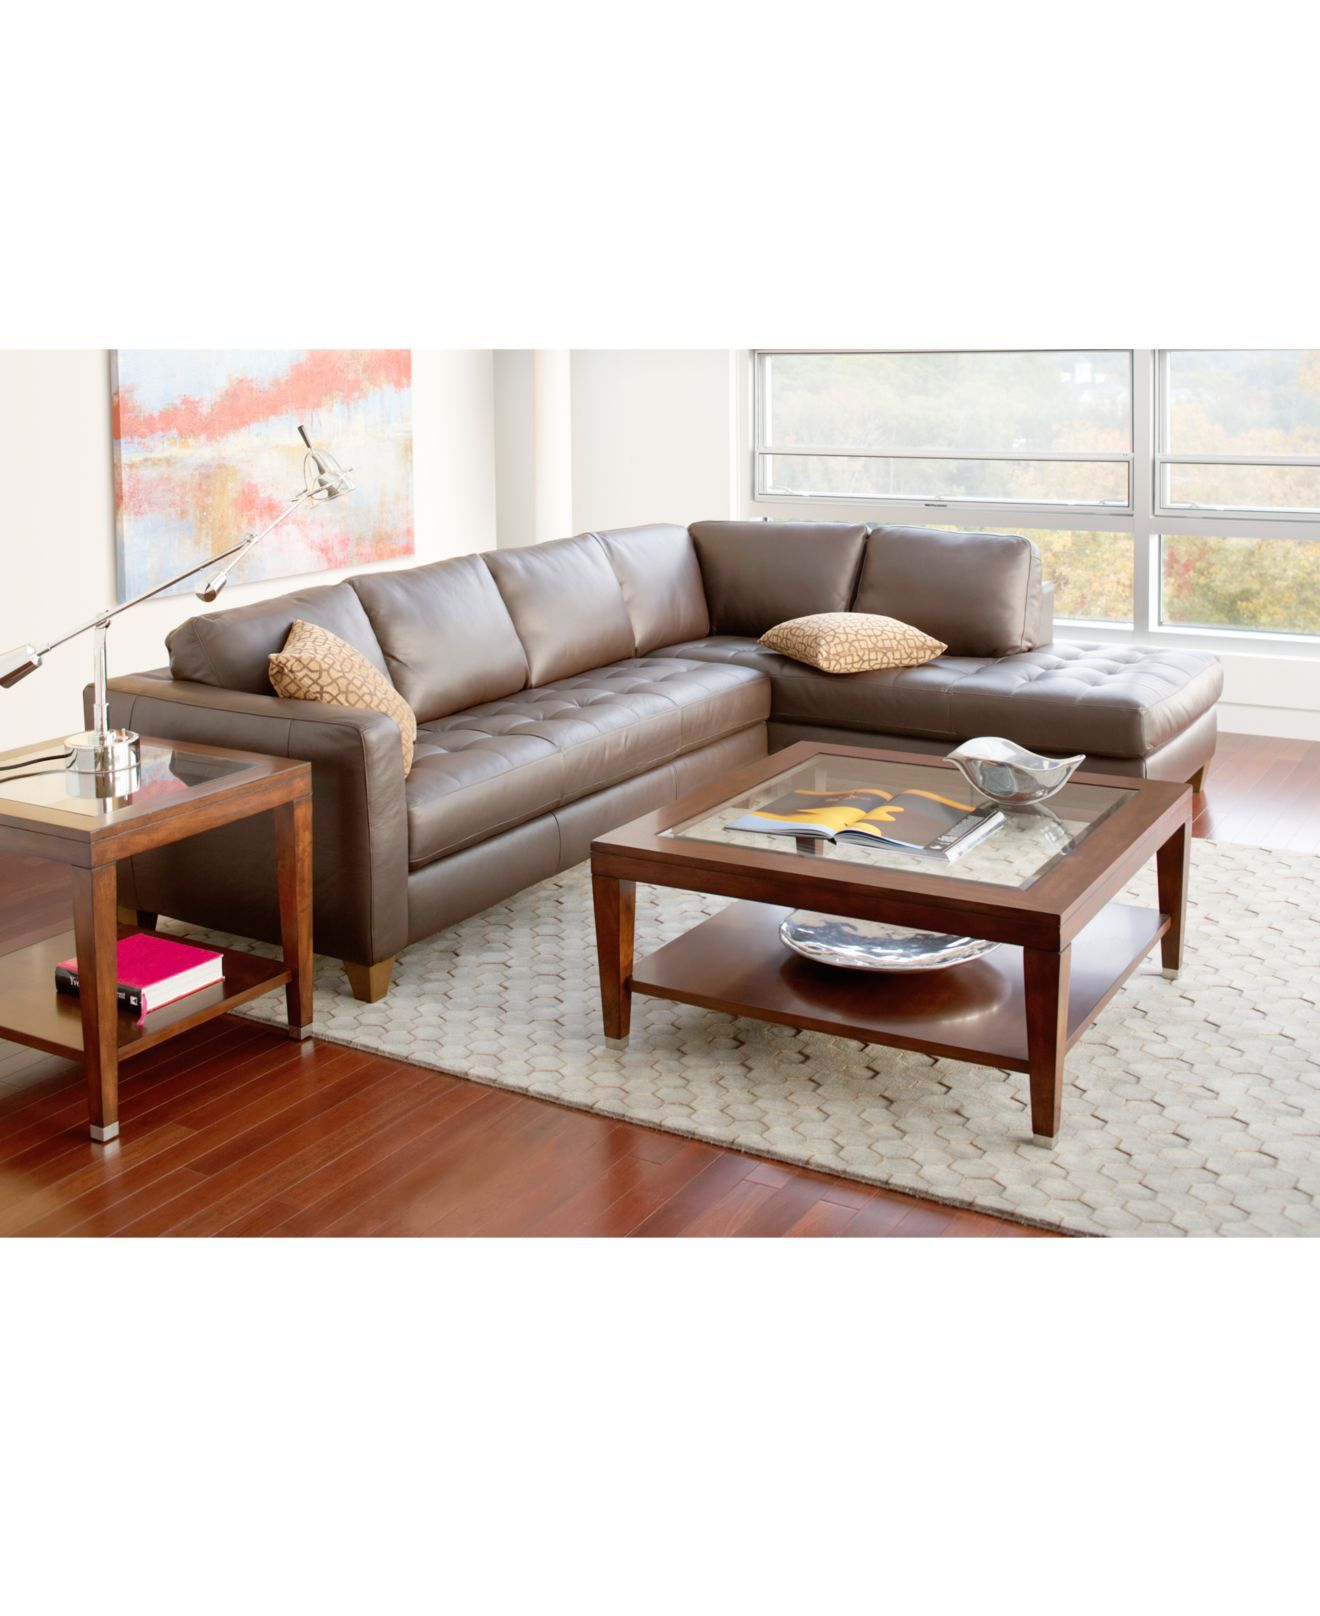 Milano Red Leather Sofa: Milano Leather Living Room Furniture Sets & Pieces